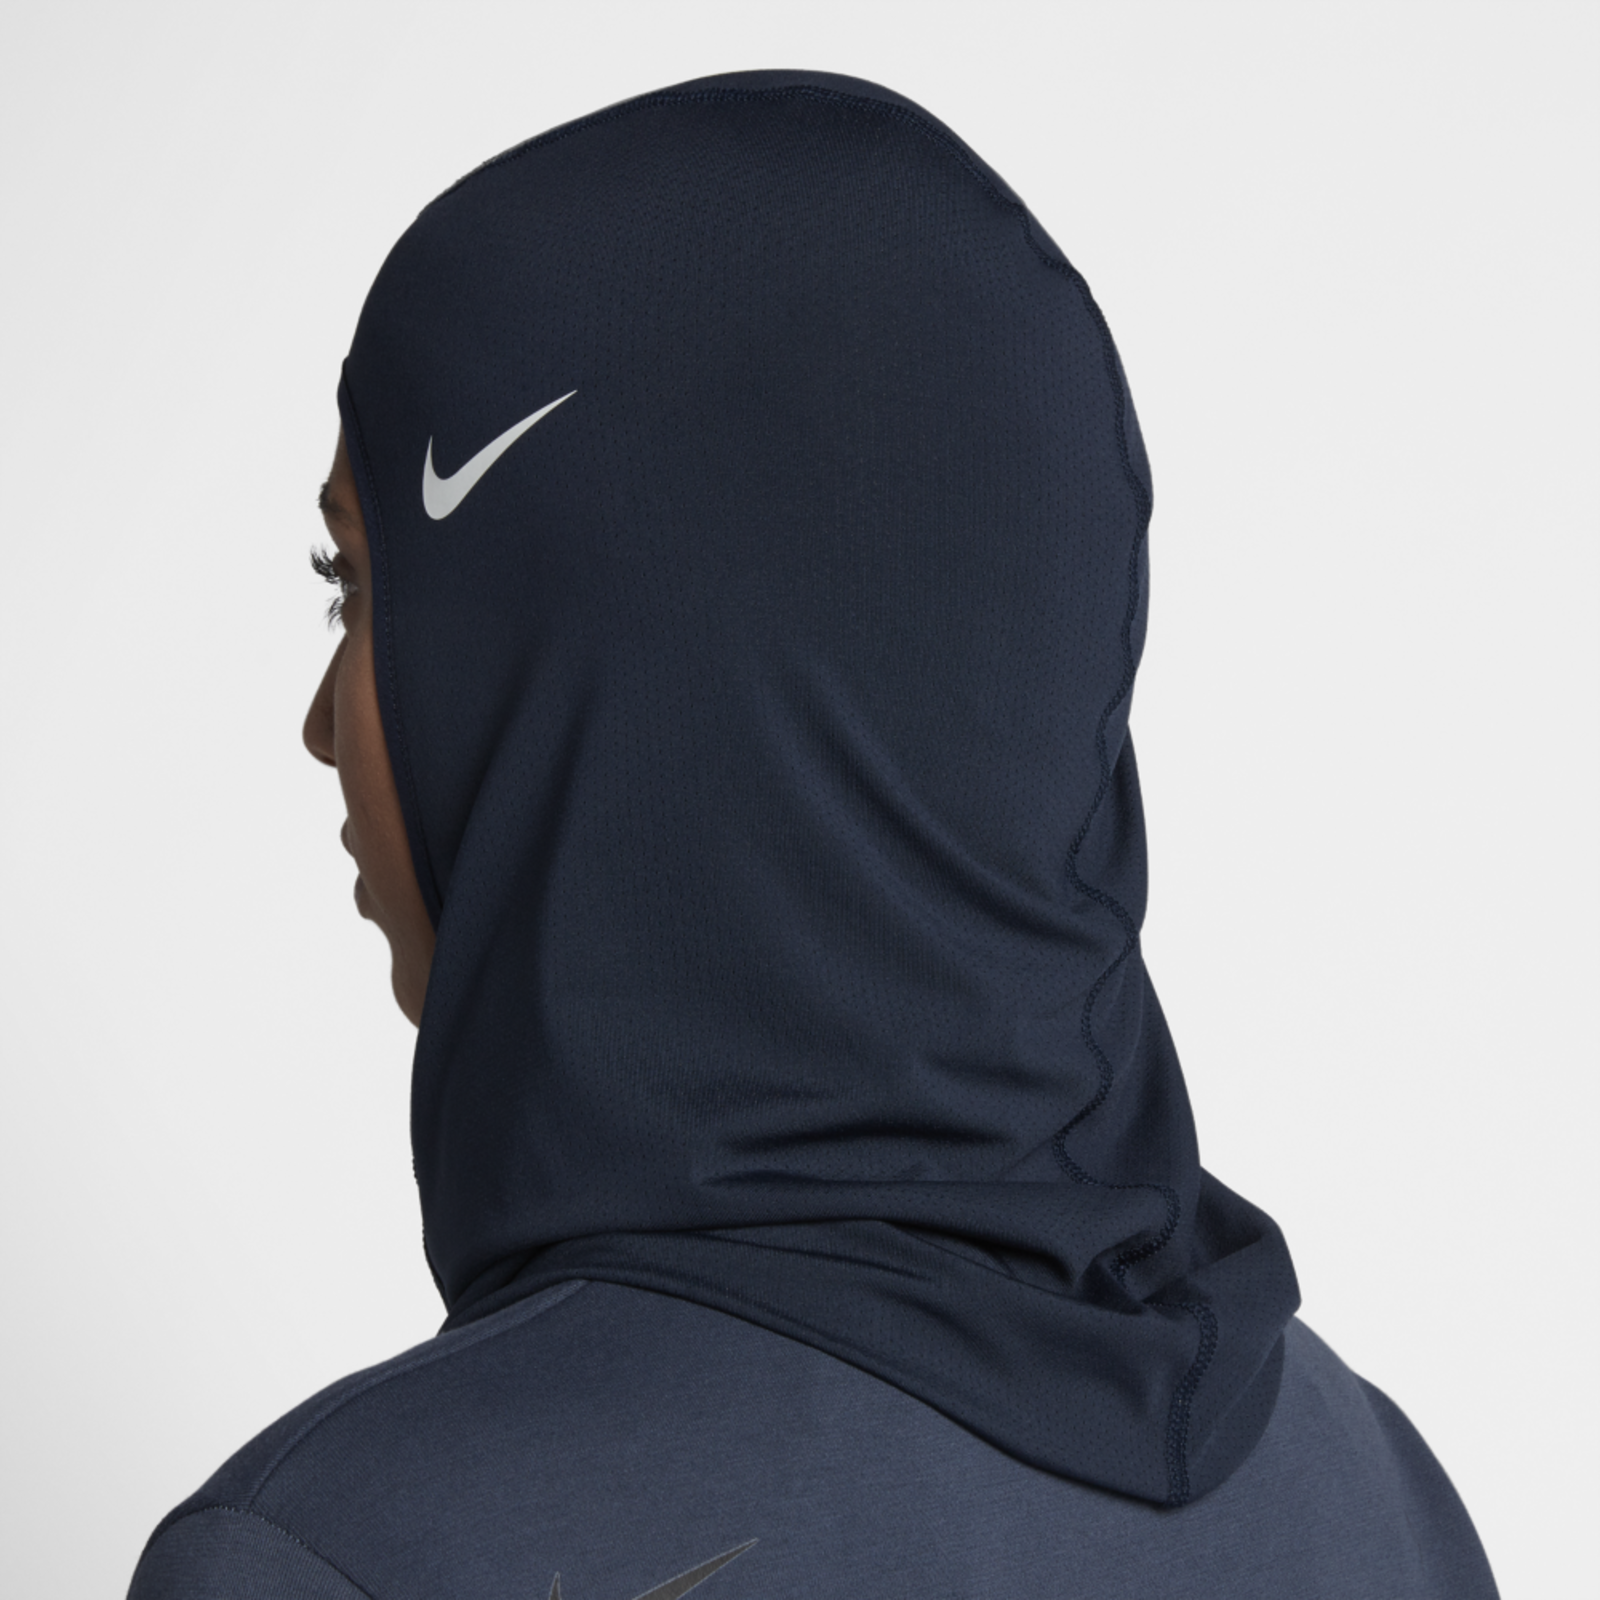 The Nike Pro Performance Hijab Goes Global  2